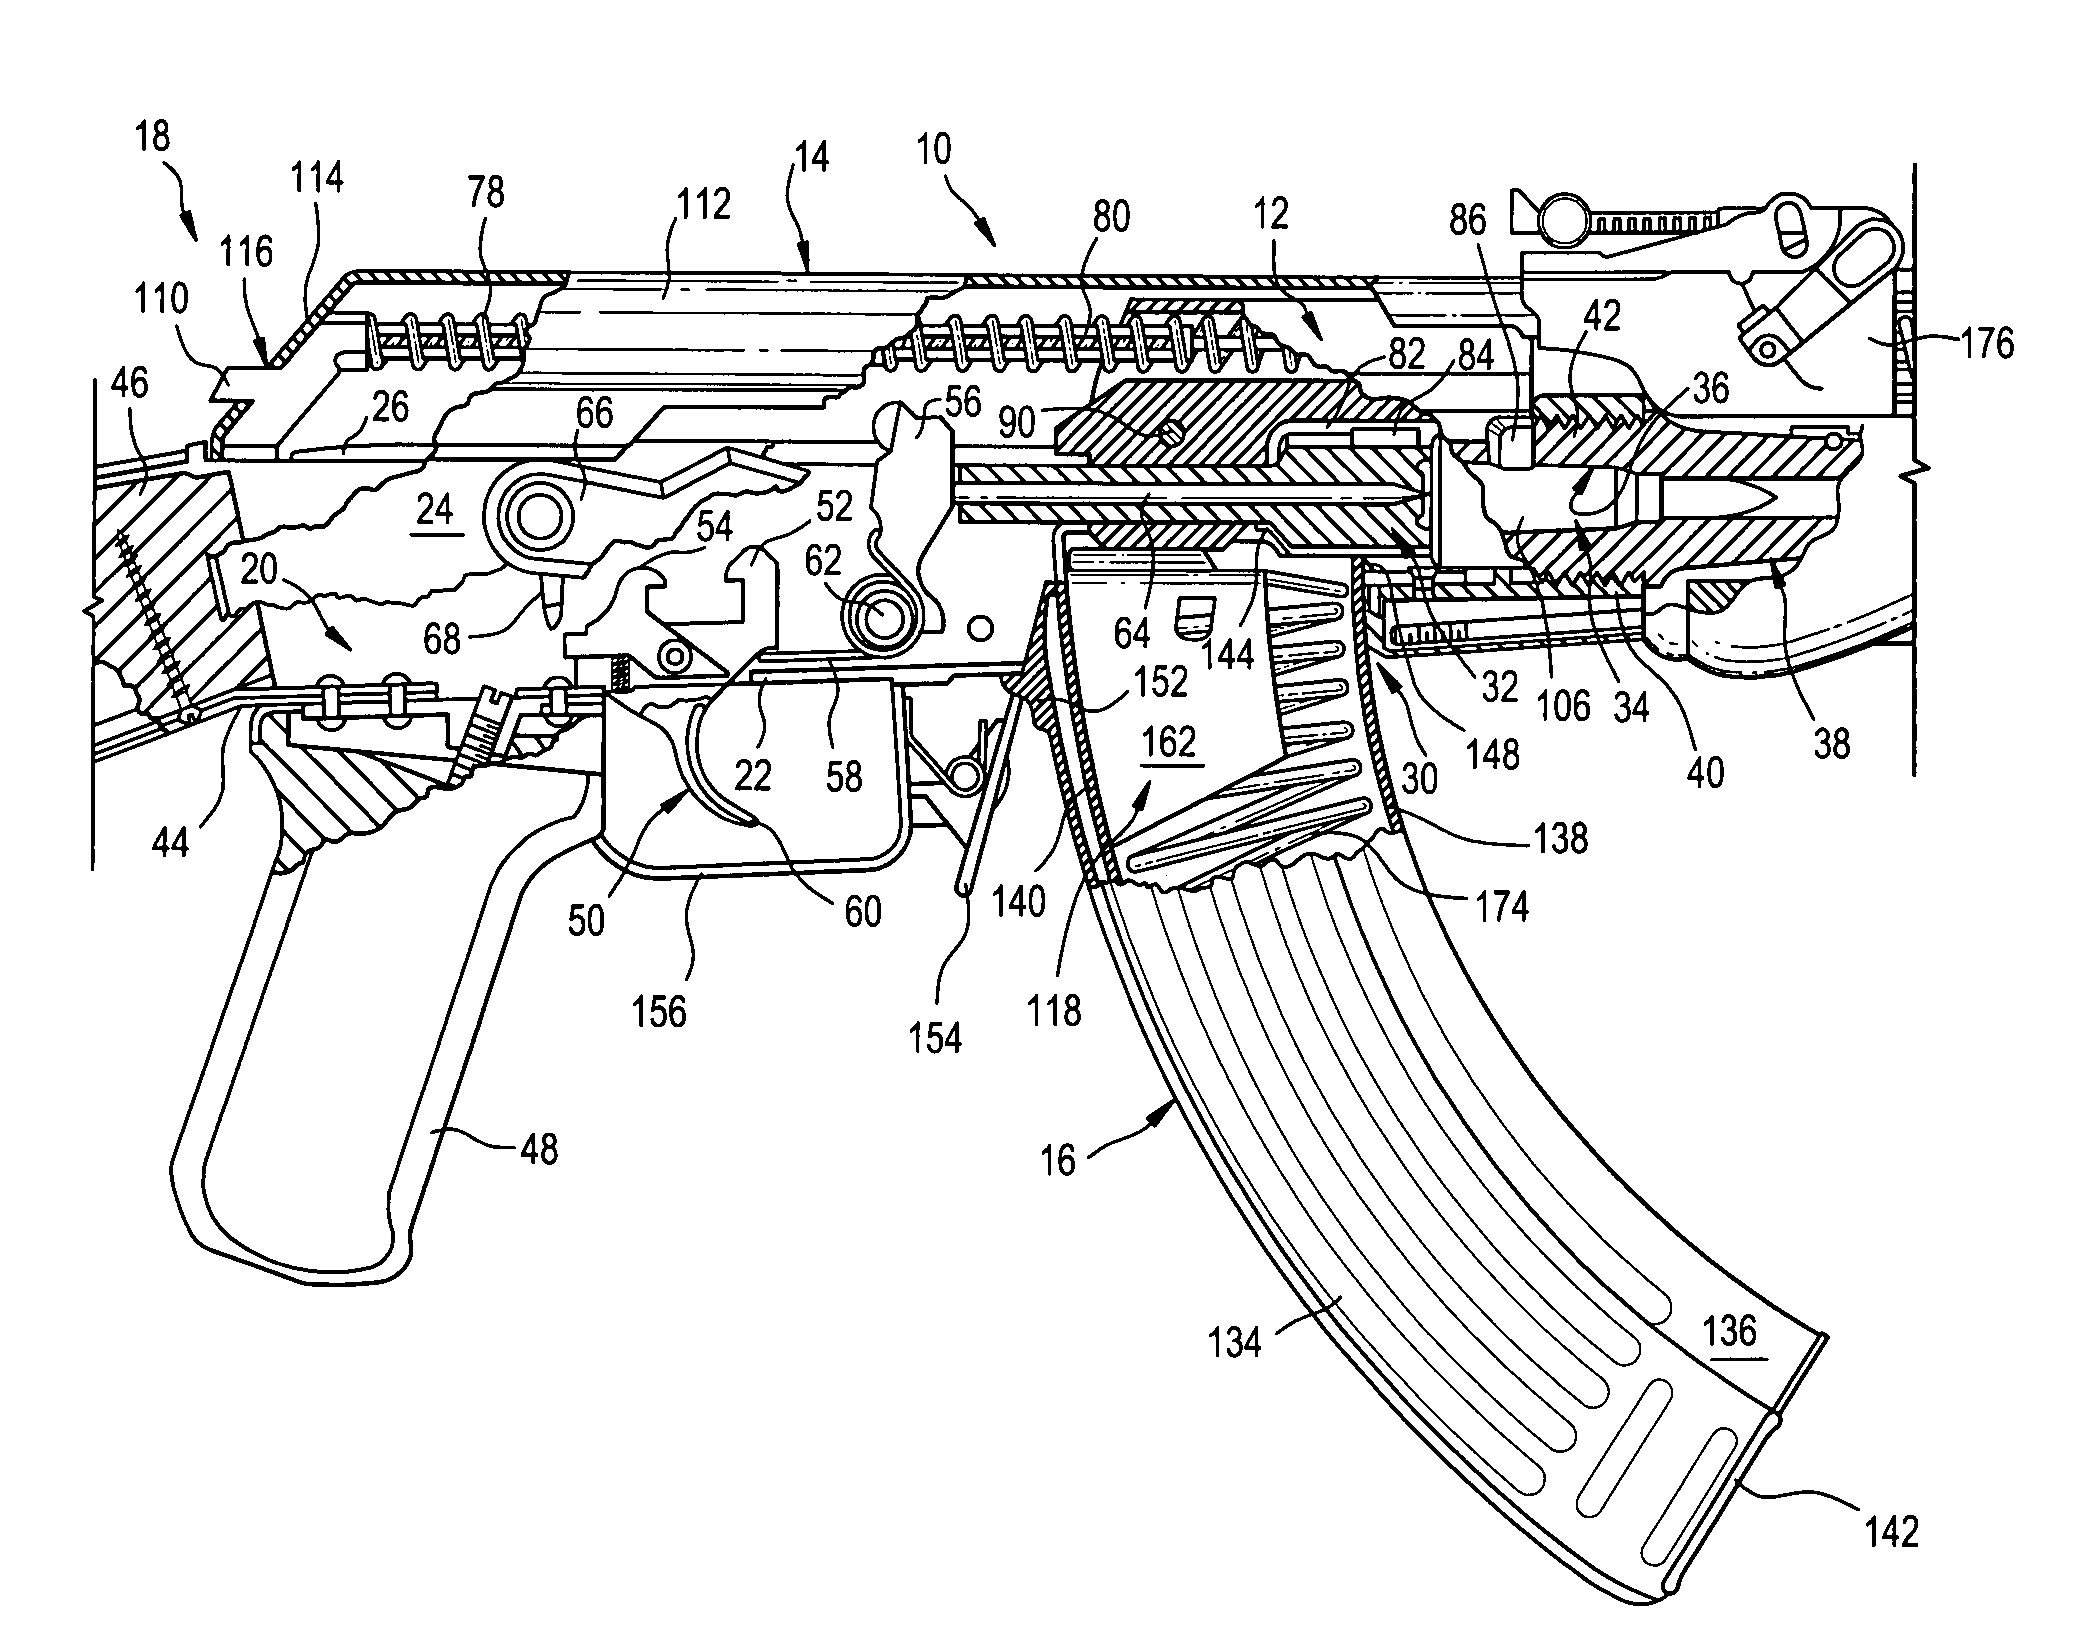 Ak 47 Blueprints Schematics, Ak, Free Engine Image For